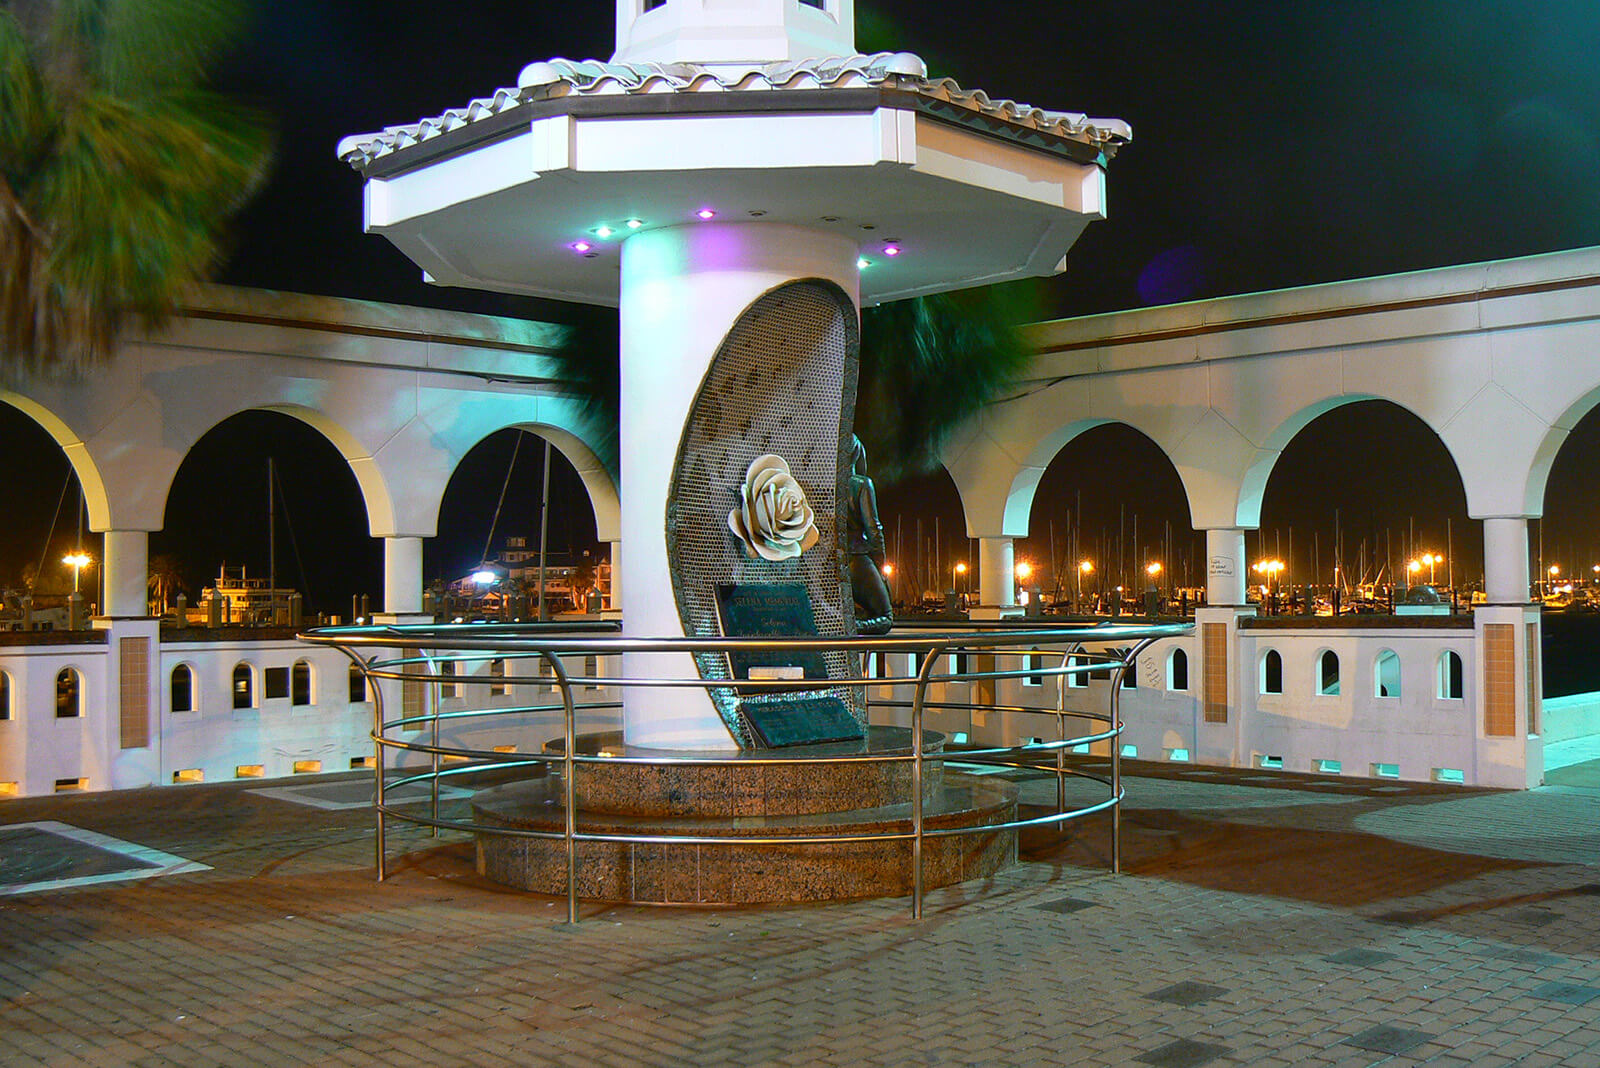 The Selena Memorial in Corpus Christi, Texas